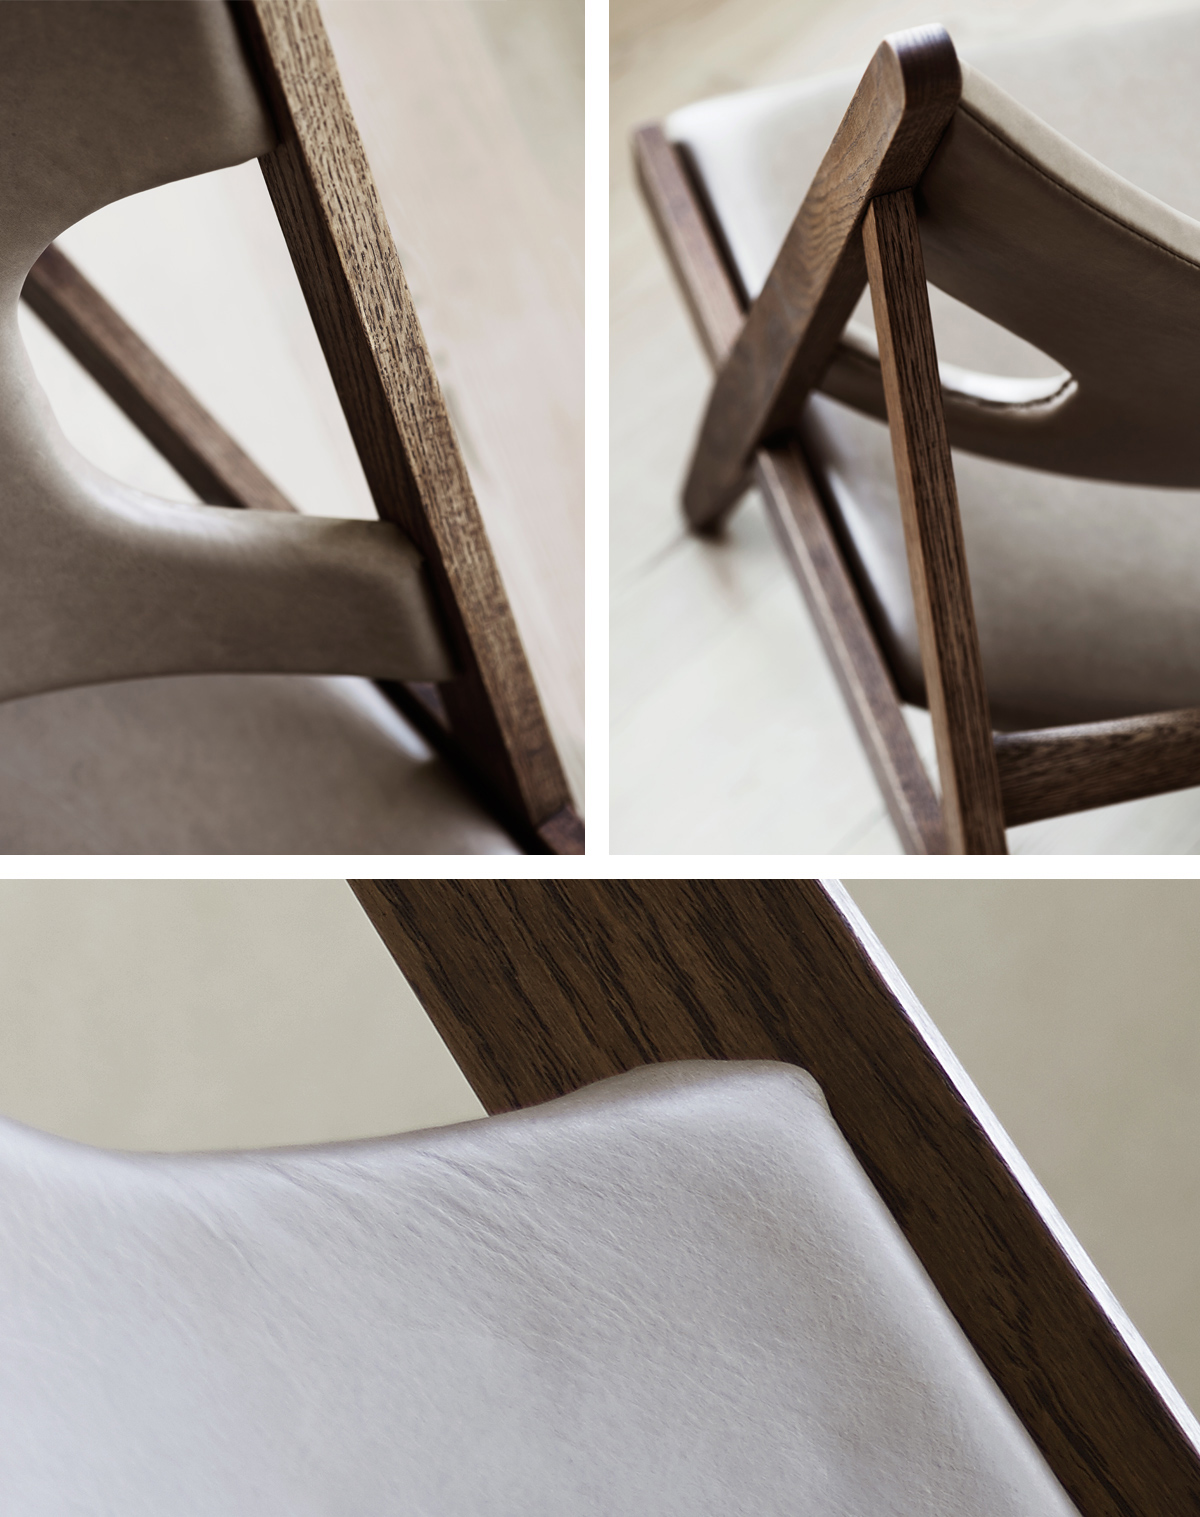 A closer look at the Menu Knitting Chair - exclusive to Nest.co.uk